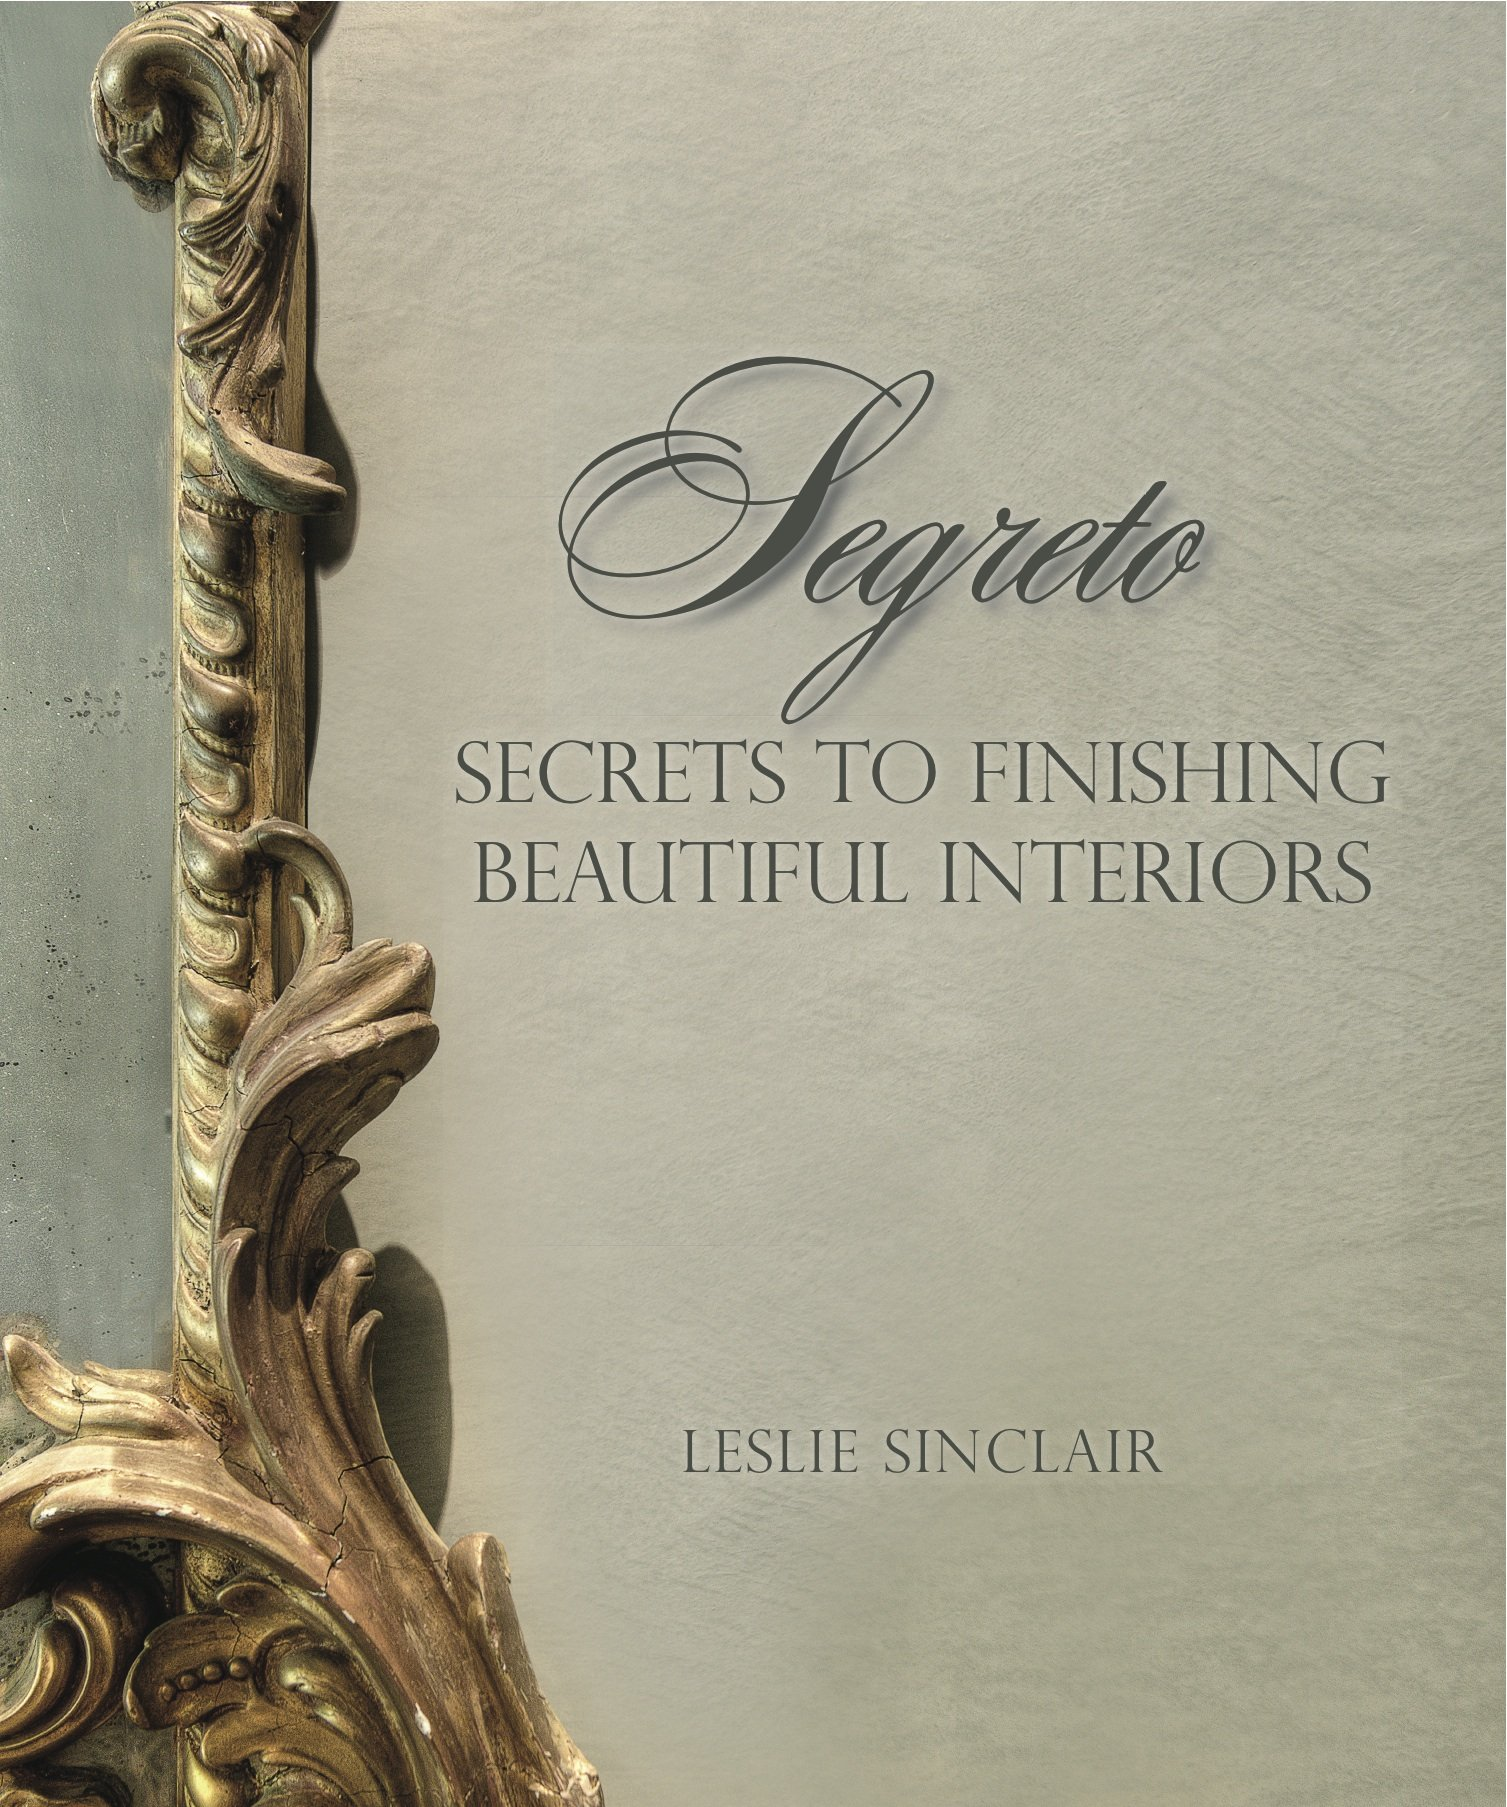 Book. Segreto Secrets to Finishing Beautiful Interiors.